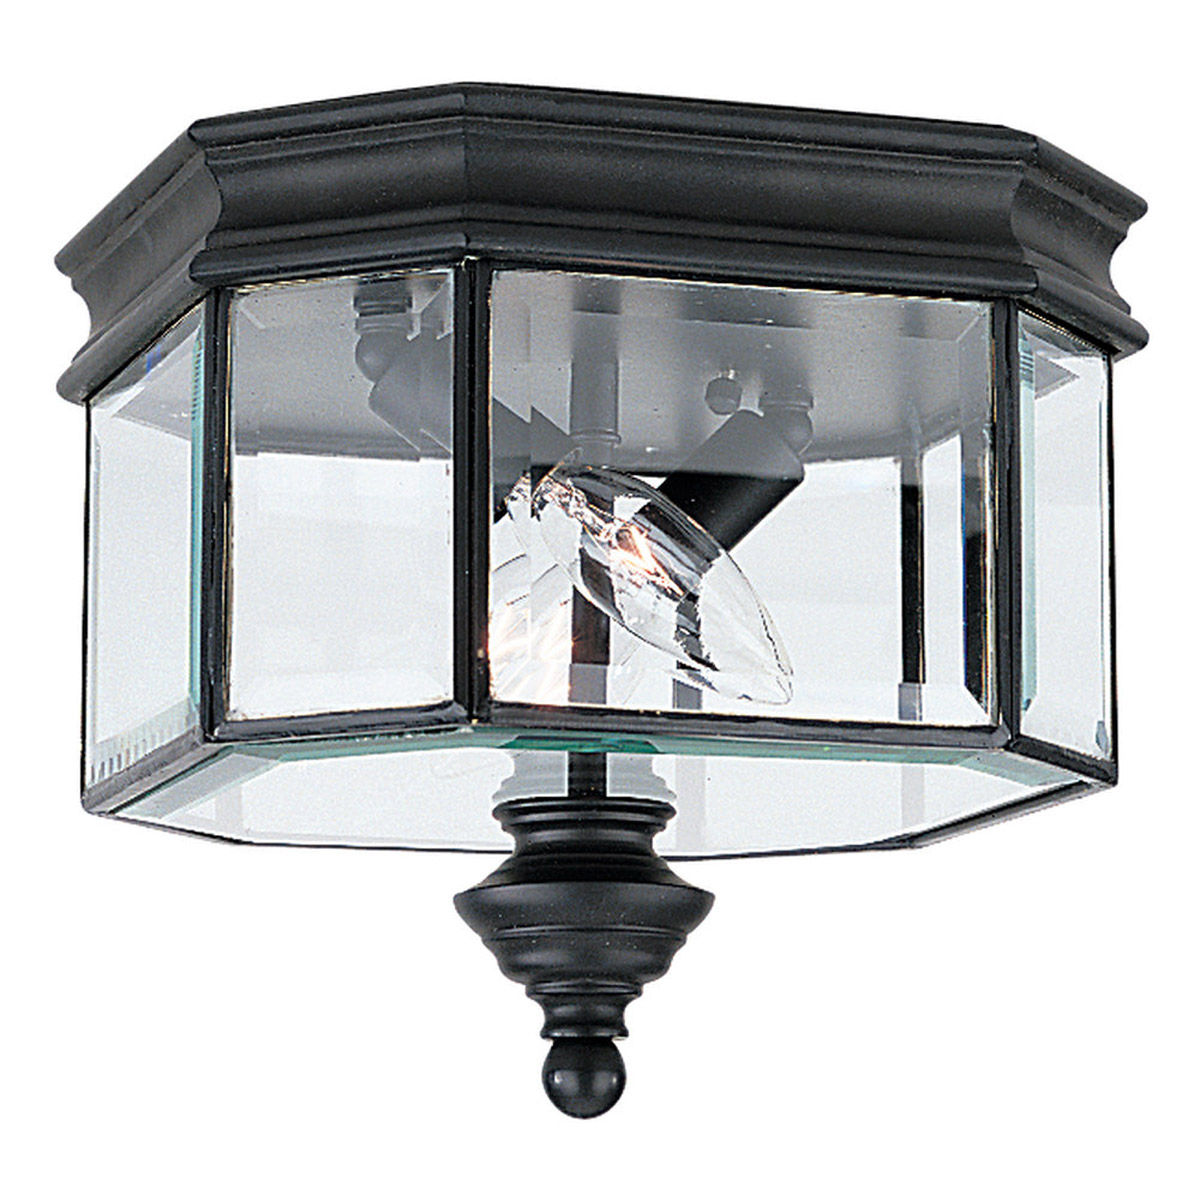 Sea Gull Lighting Hill Gate 2 Light Outdoor Wall Lantern in Black 8834-12